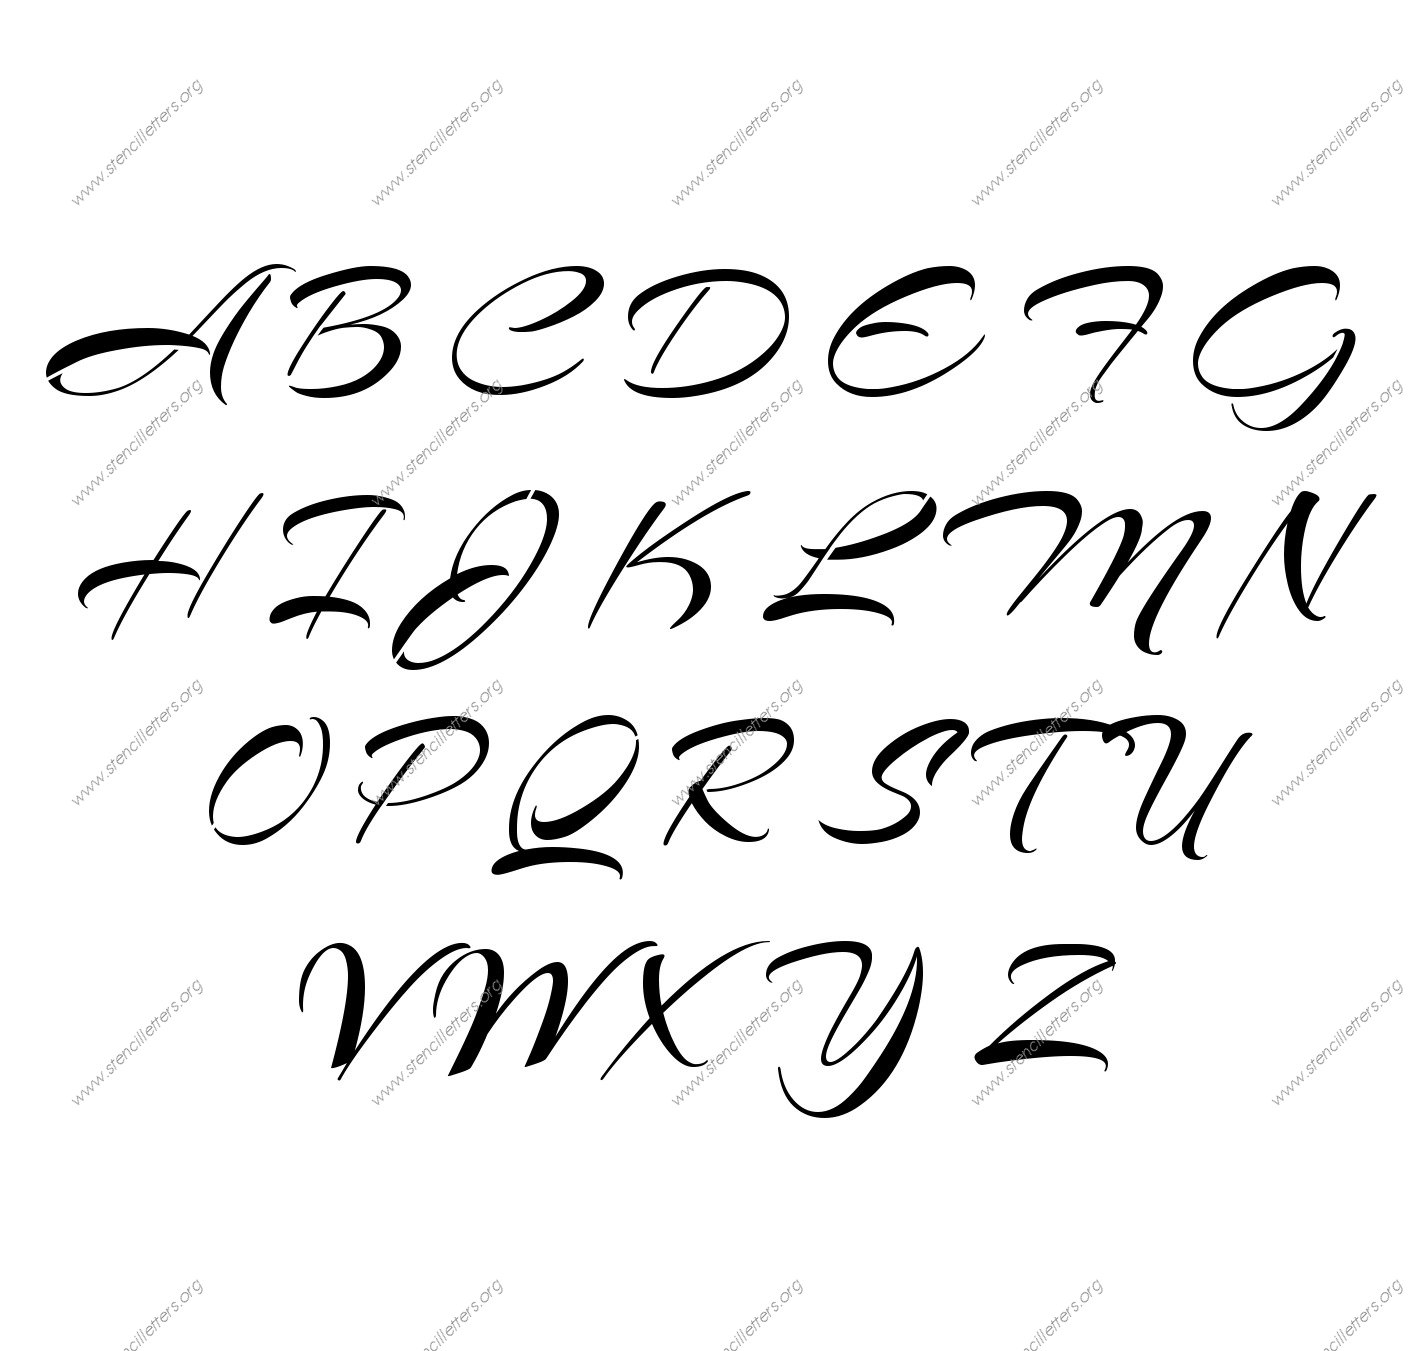 Worksheet Cursive Lettets stylish cursive letter stencils numbers and custom made to order brushed stencil